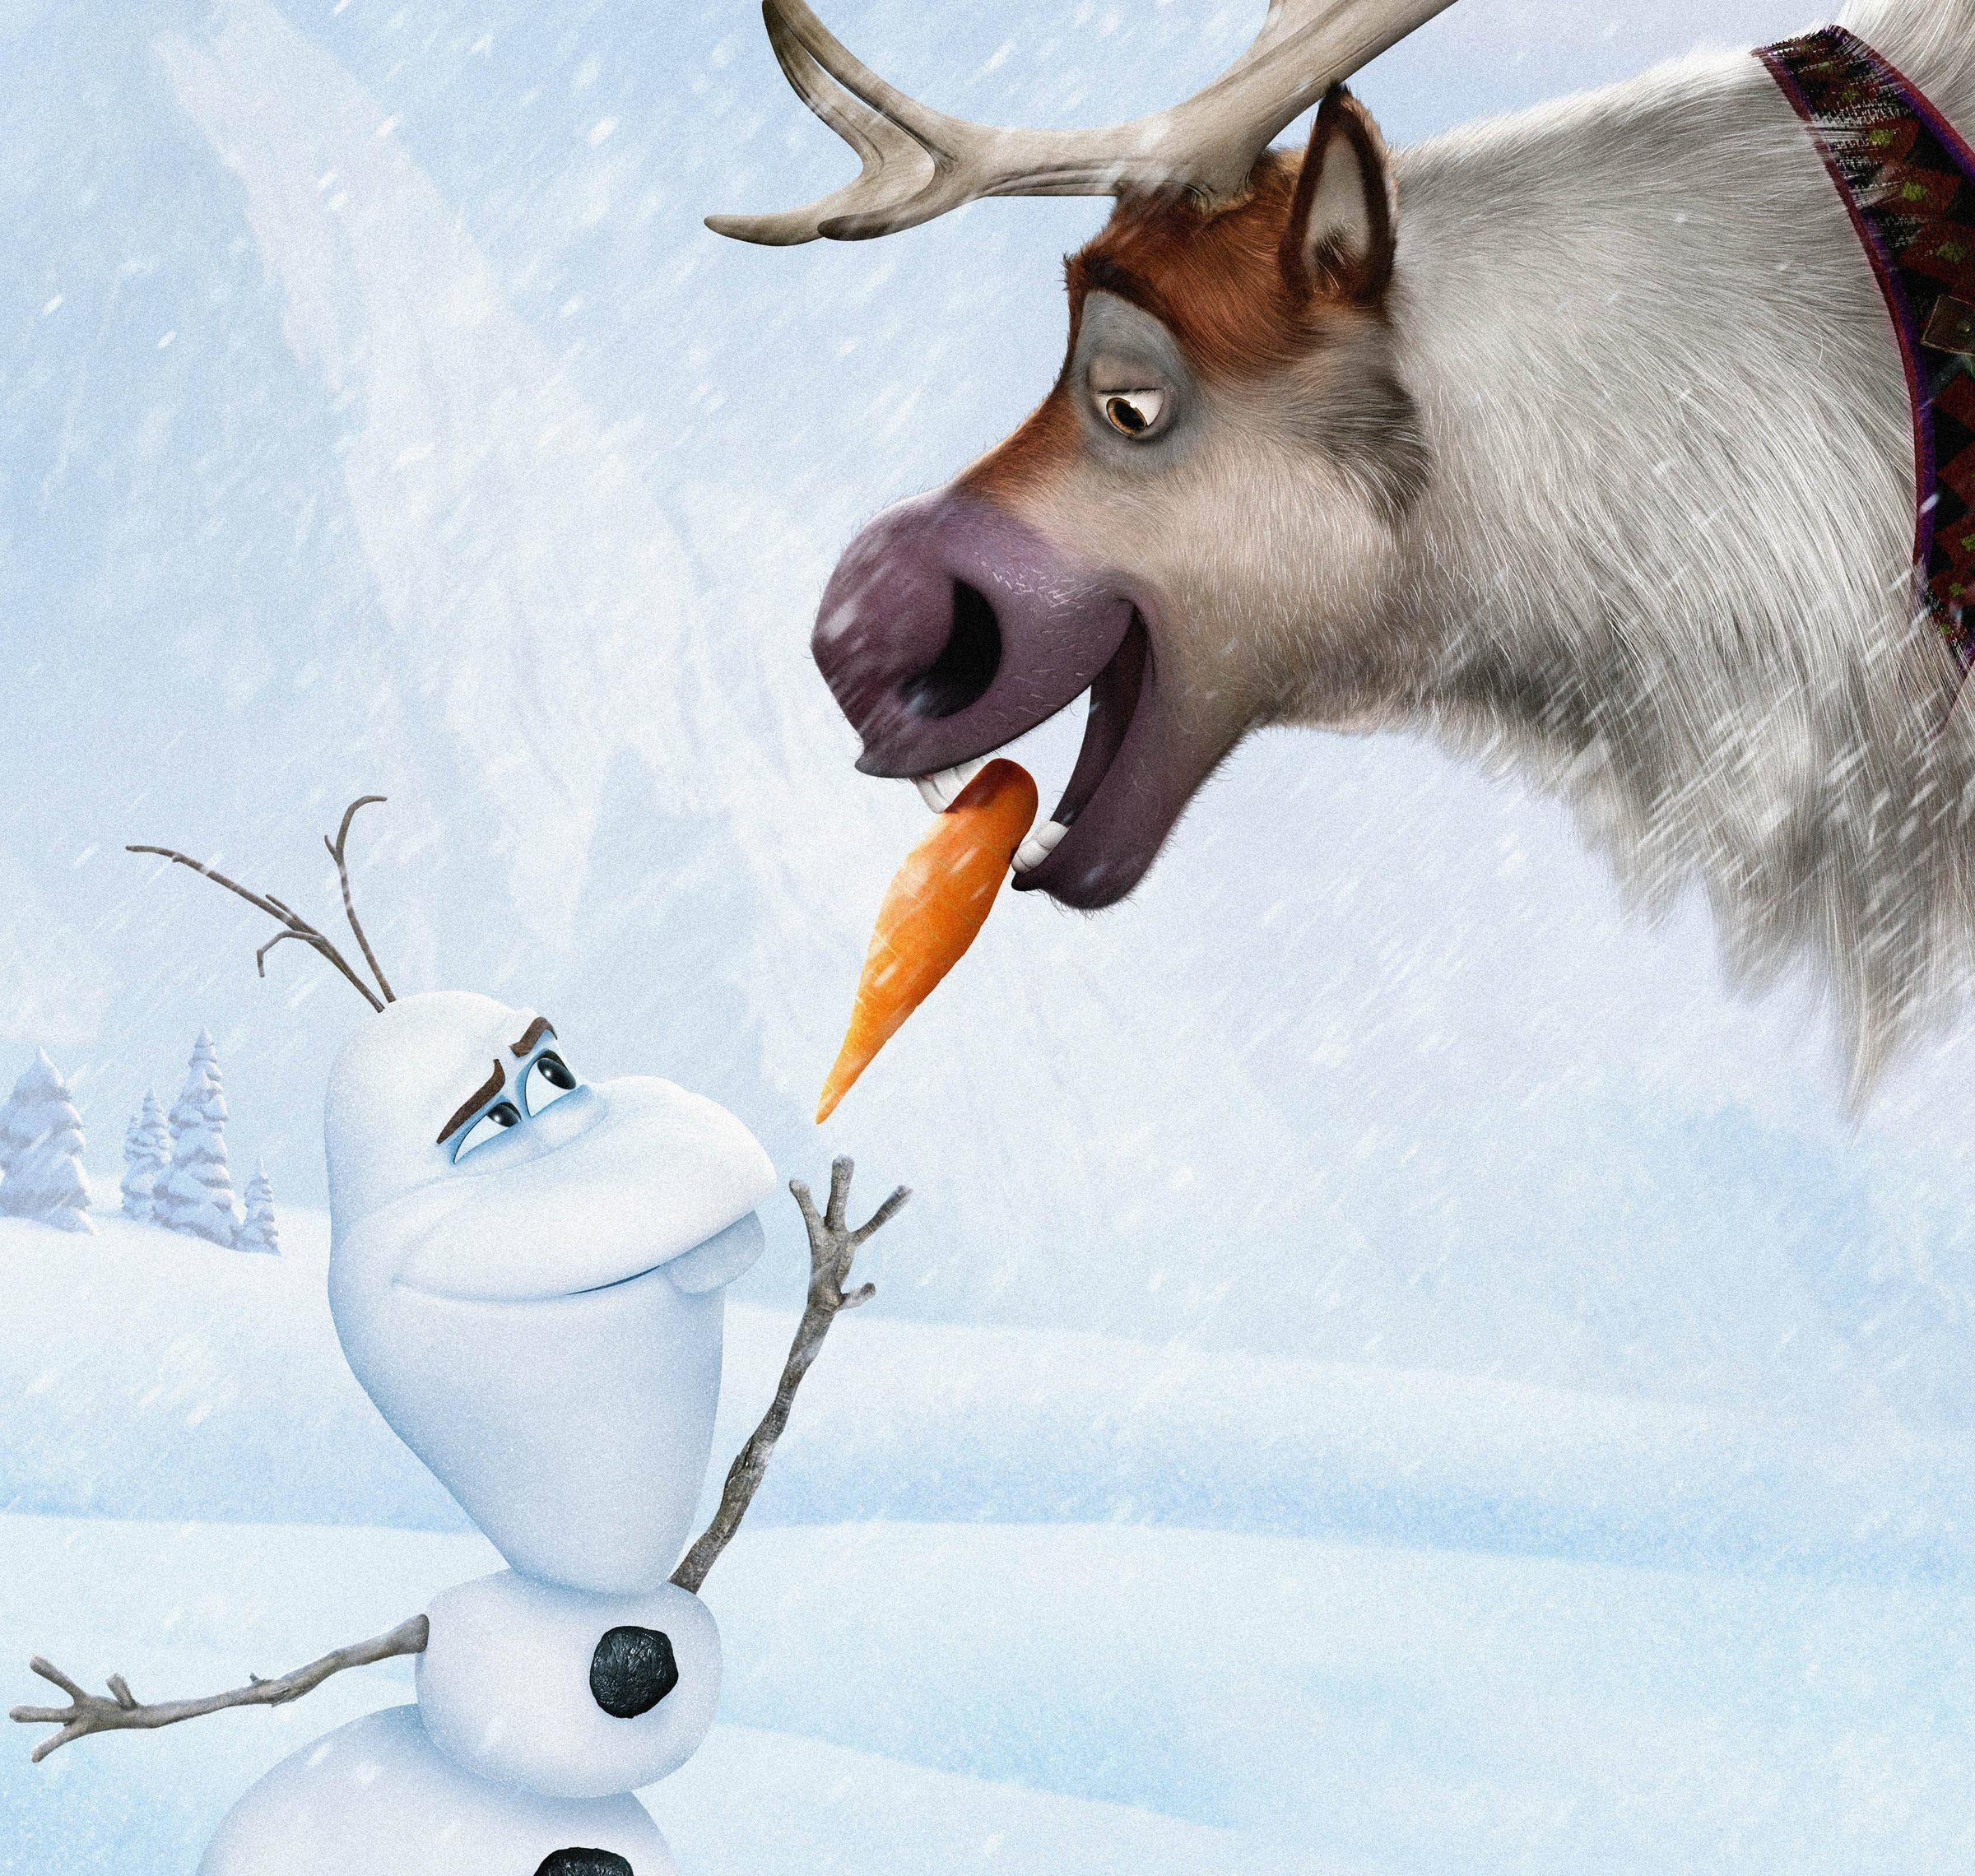 olaf wallpaper hd for mobile